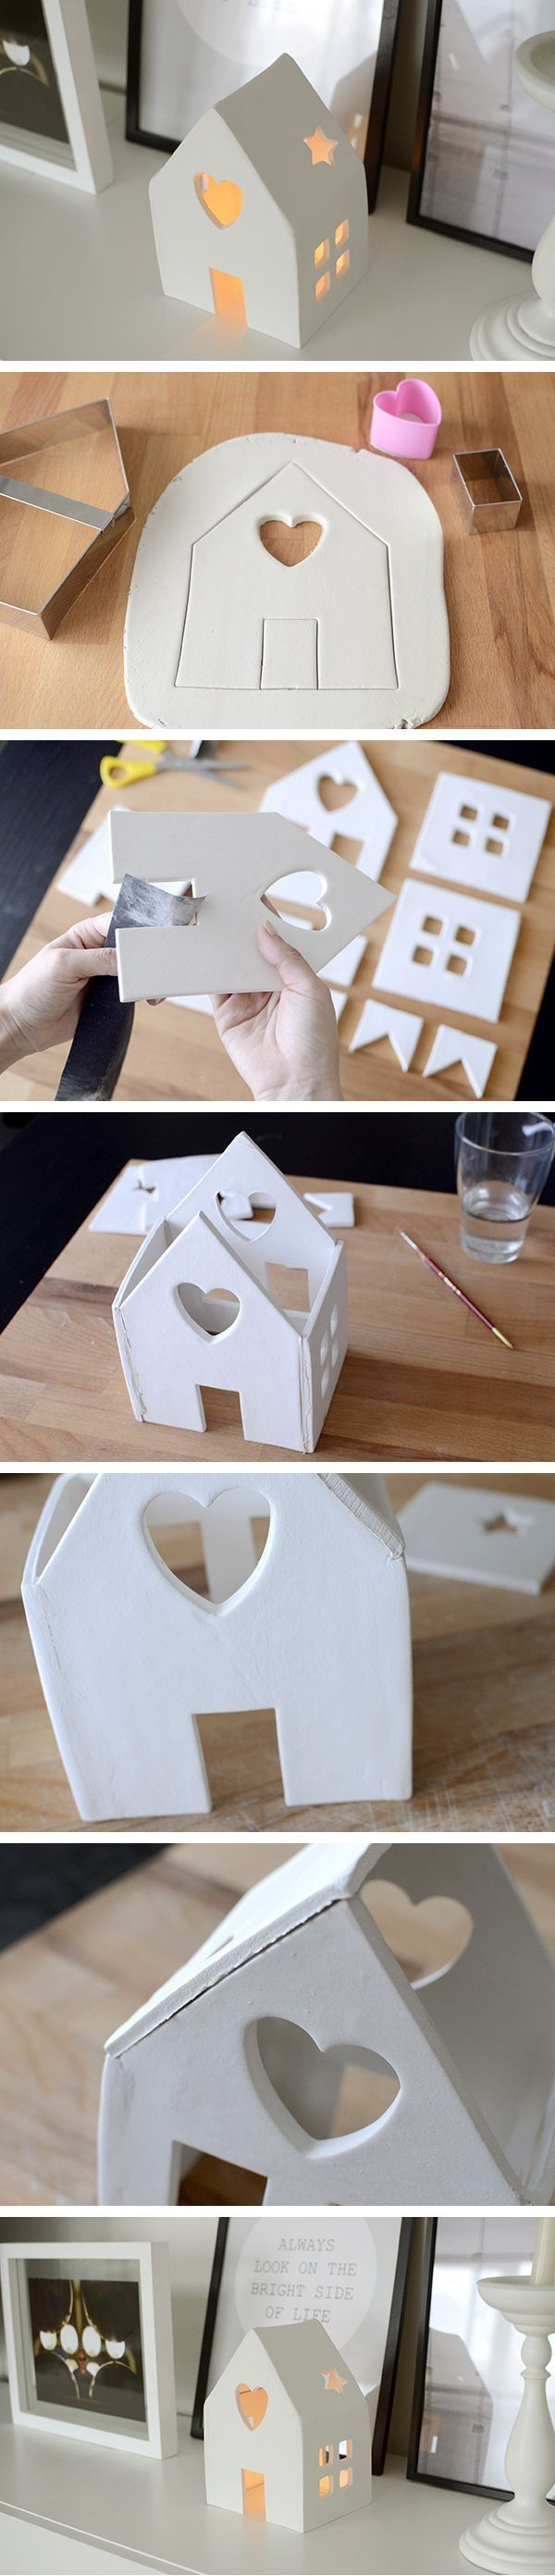 SO CUTE! can be done w/ salt dough, plaster, even concrete or cardboard!!!